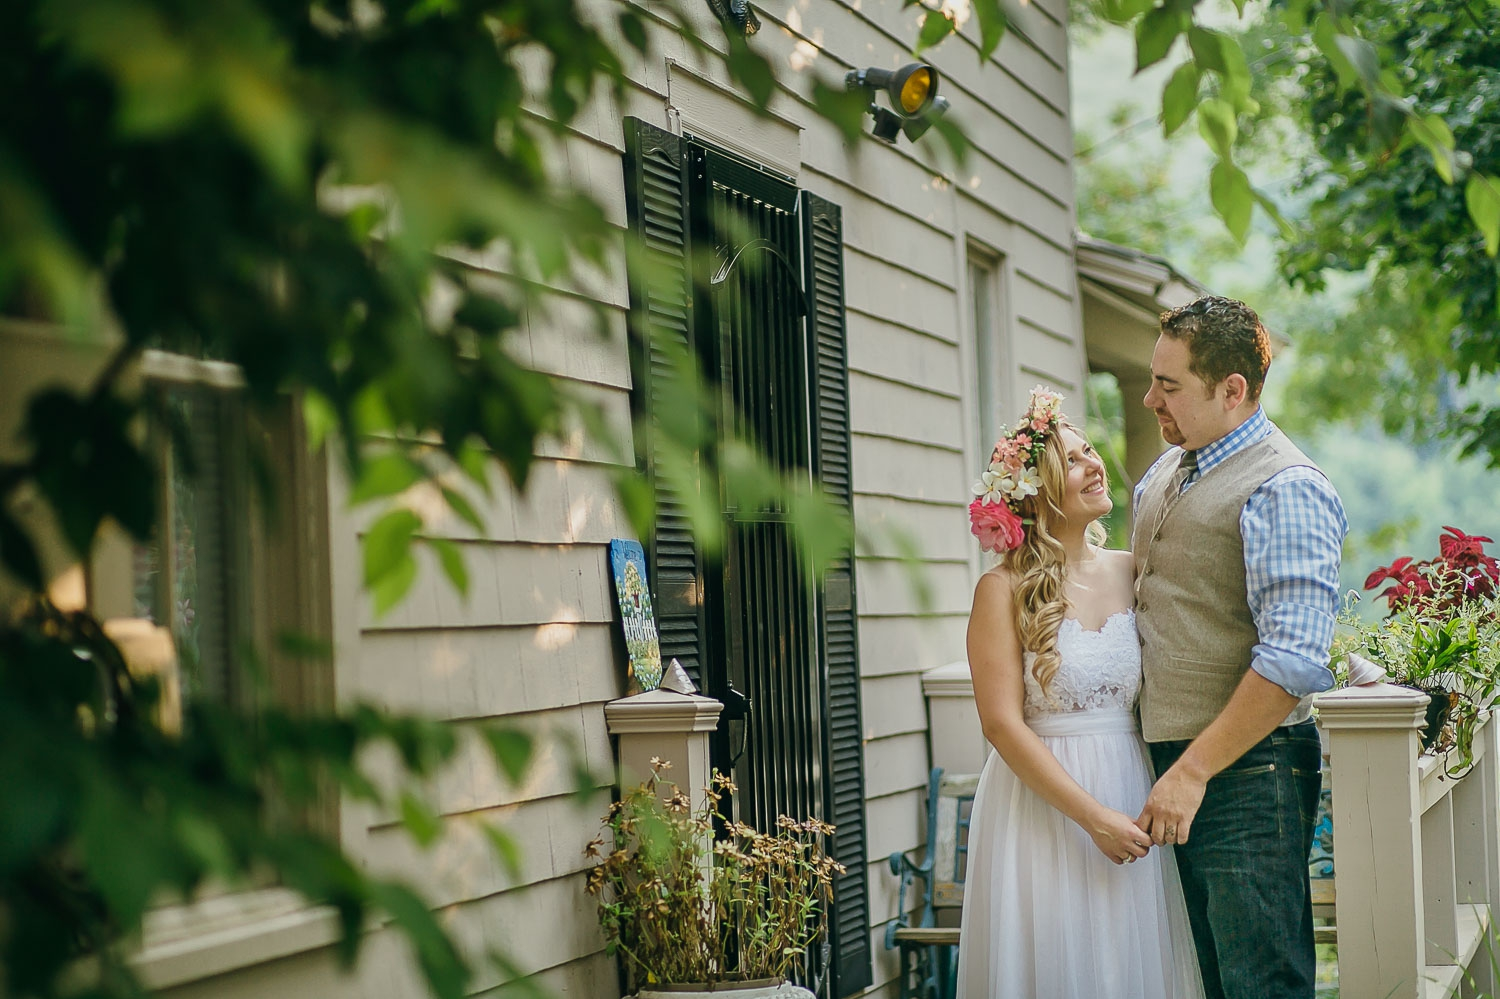 new york wedding photographer 30.jpg